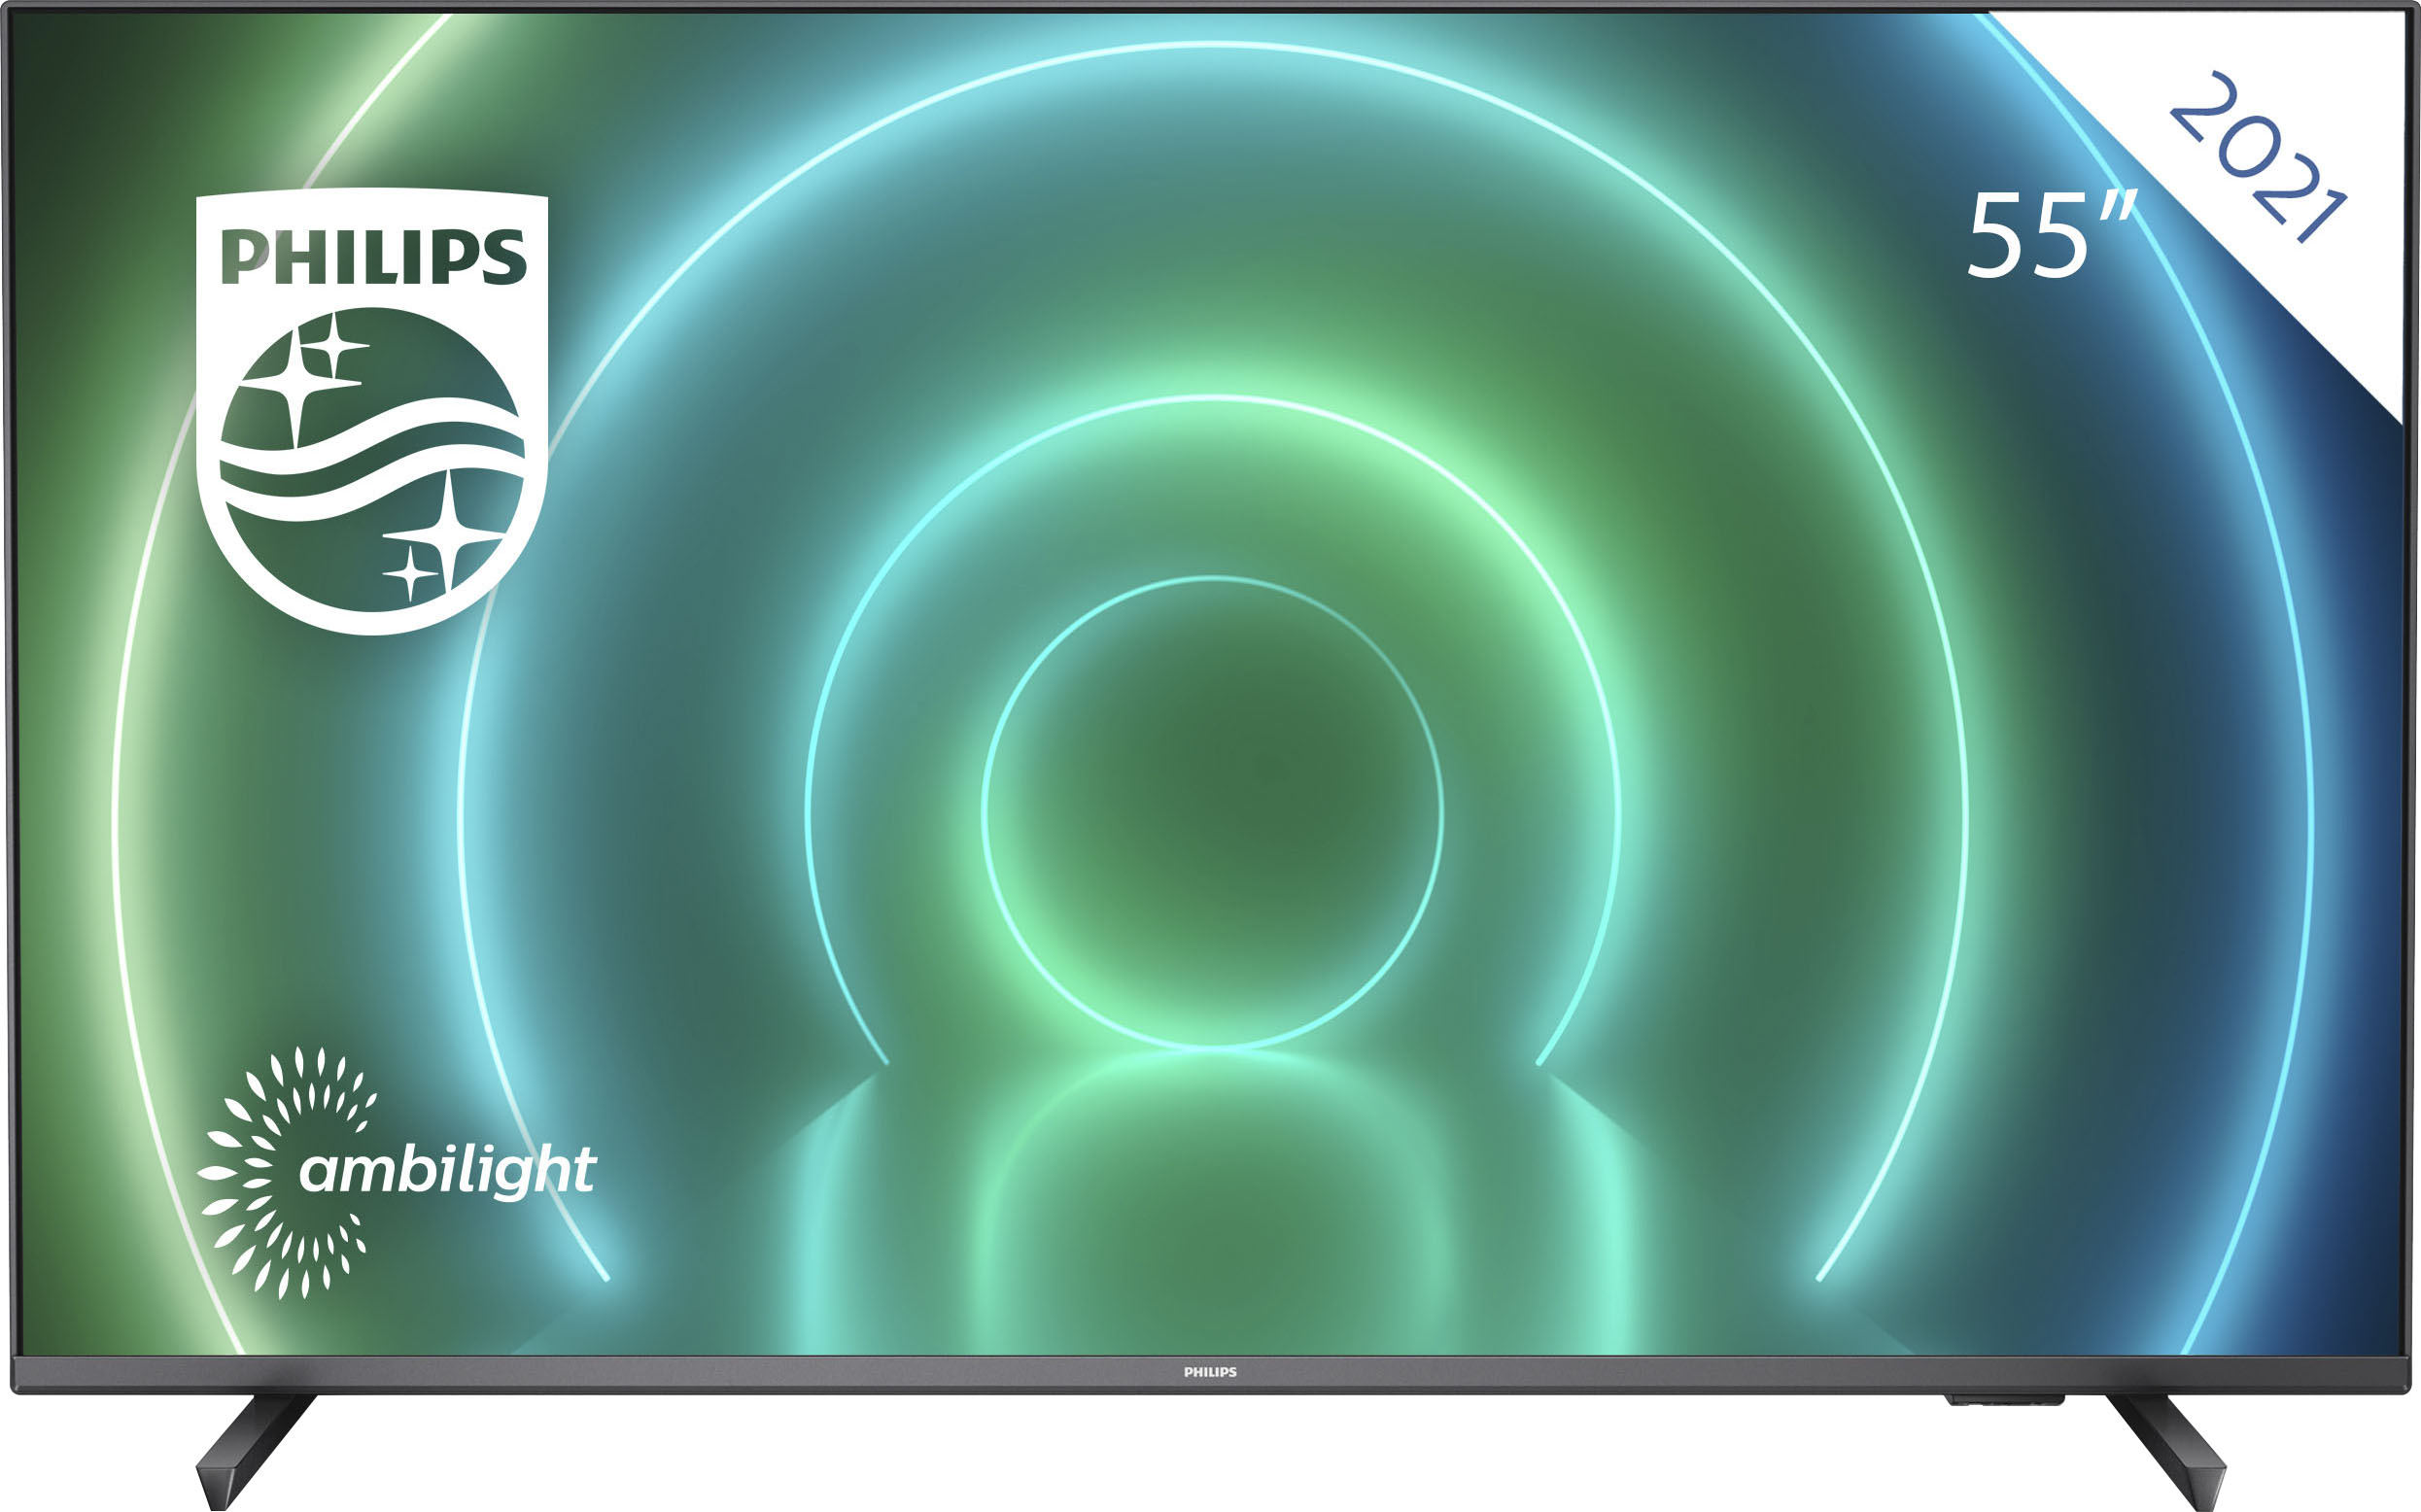 Philips LED-Fernseher 55PUS7906 12 , 139 cm 55 , 4K Ultra HD, Android TV-Smart-TV